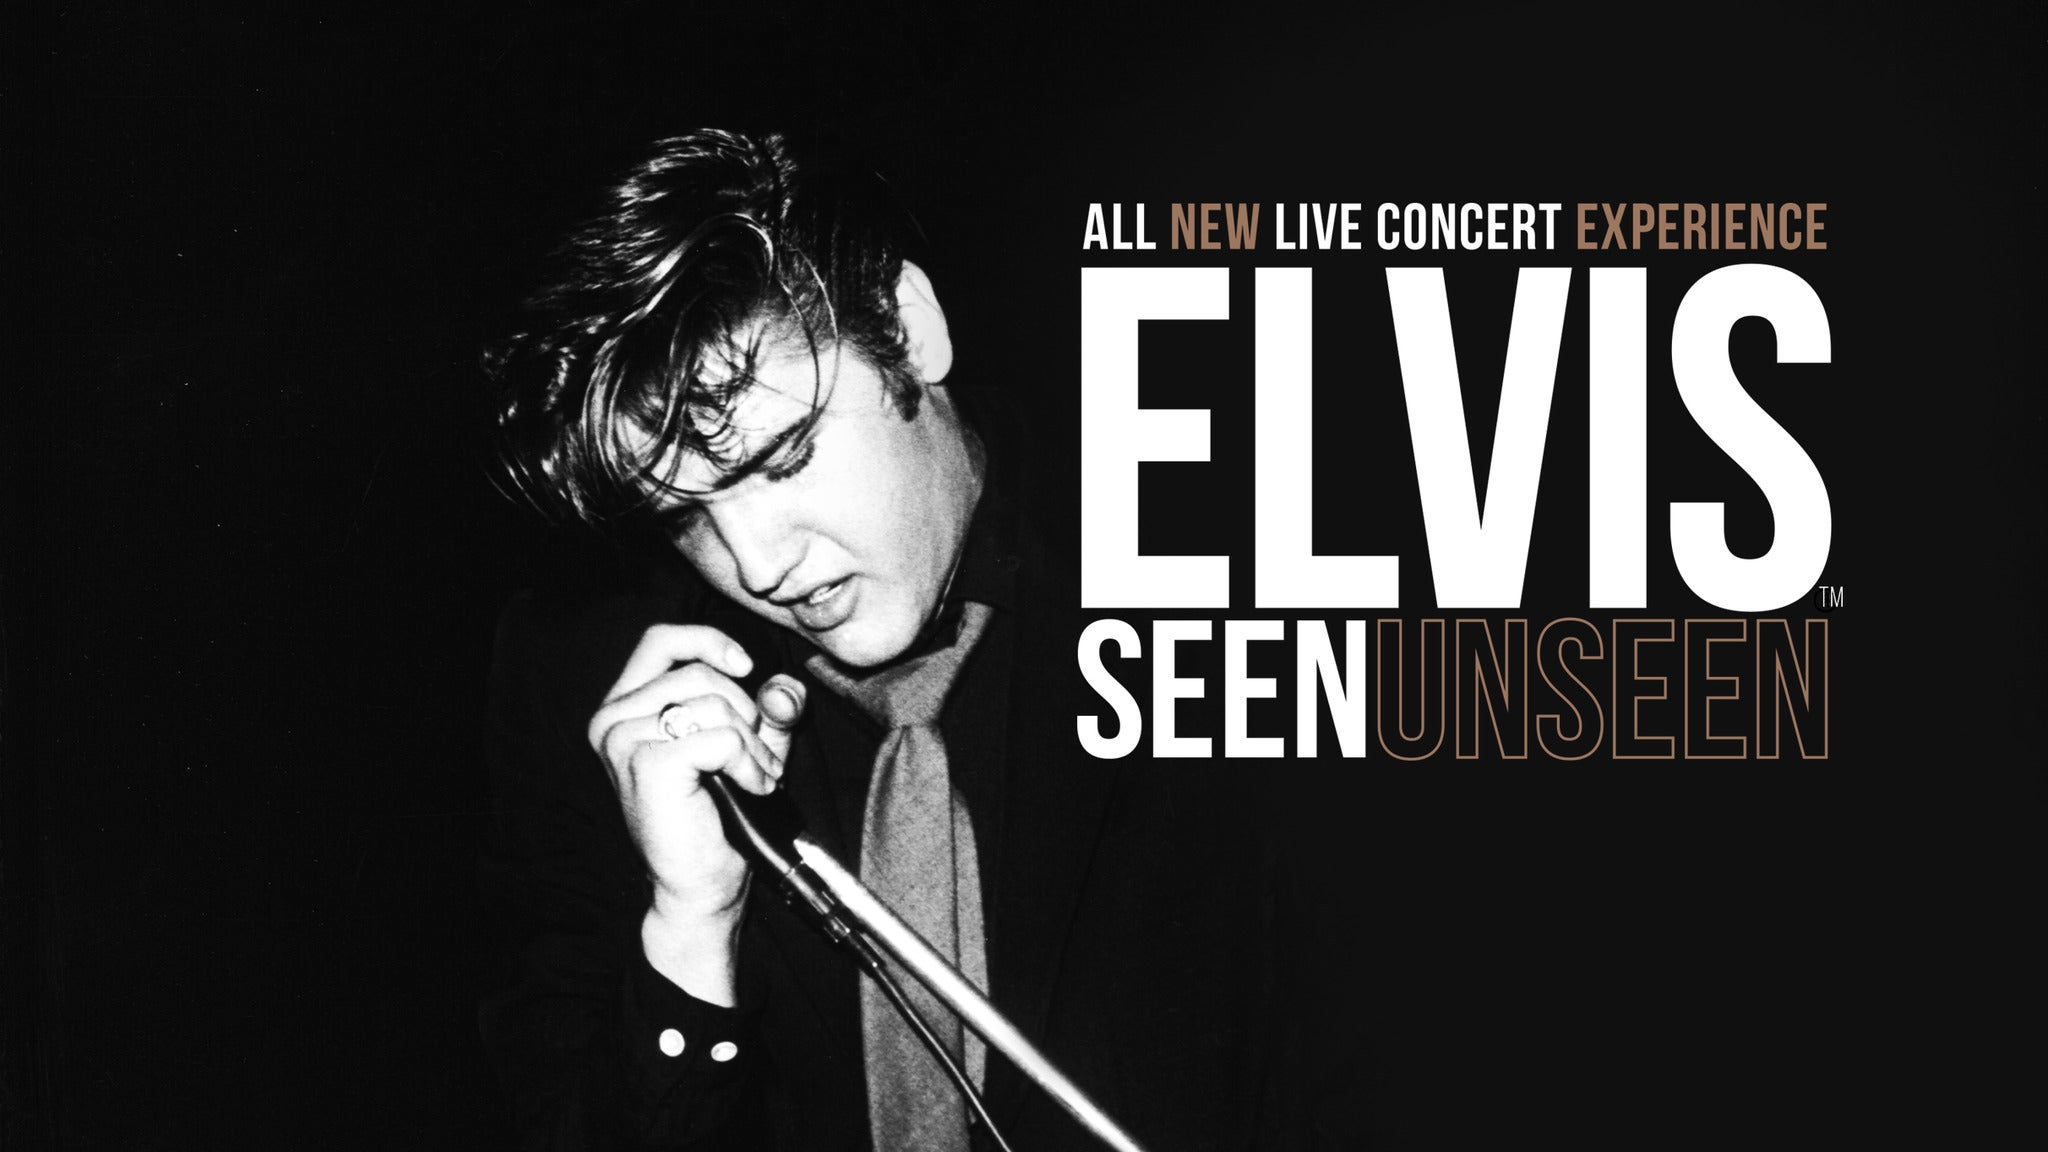 Elvis: Seen Unseen - A One Of A Kind Concert Experience